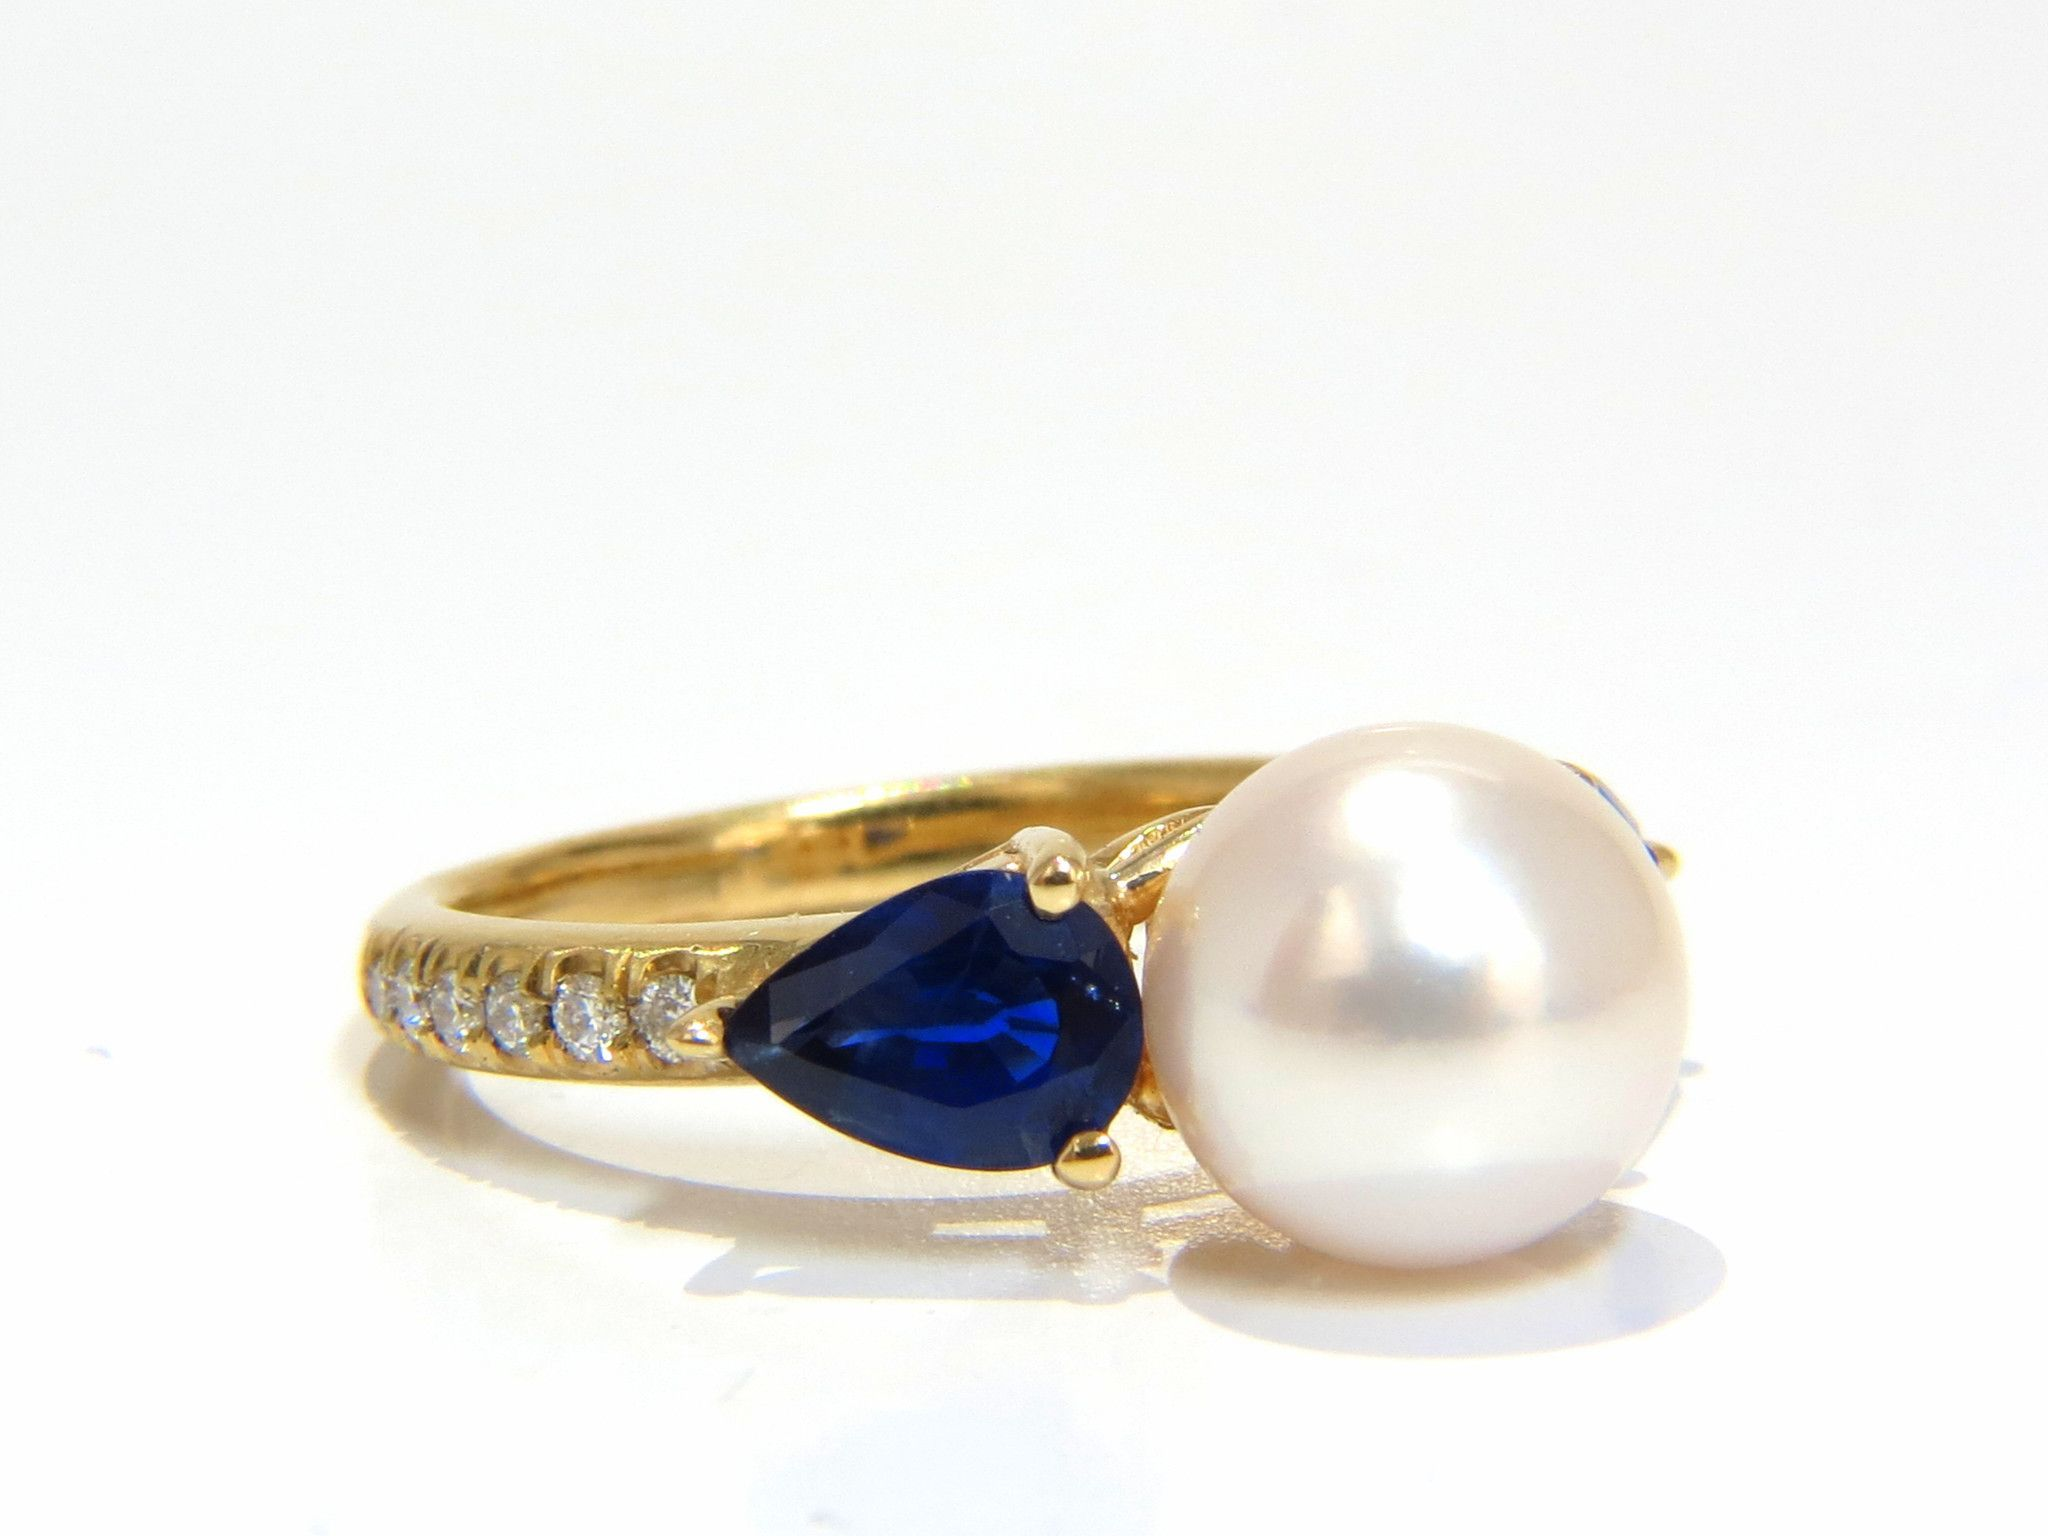 in pearl spider sale unique gold pearls and sapphires new blue wave sapphire products jewellery earrings